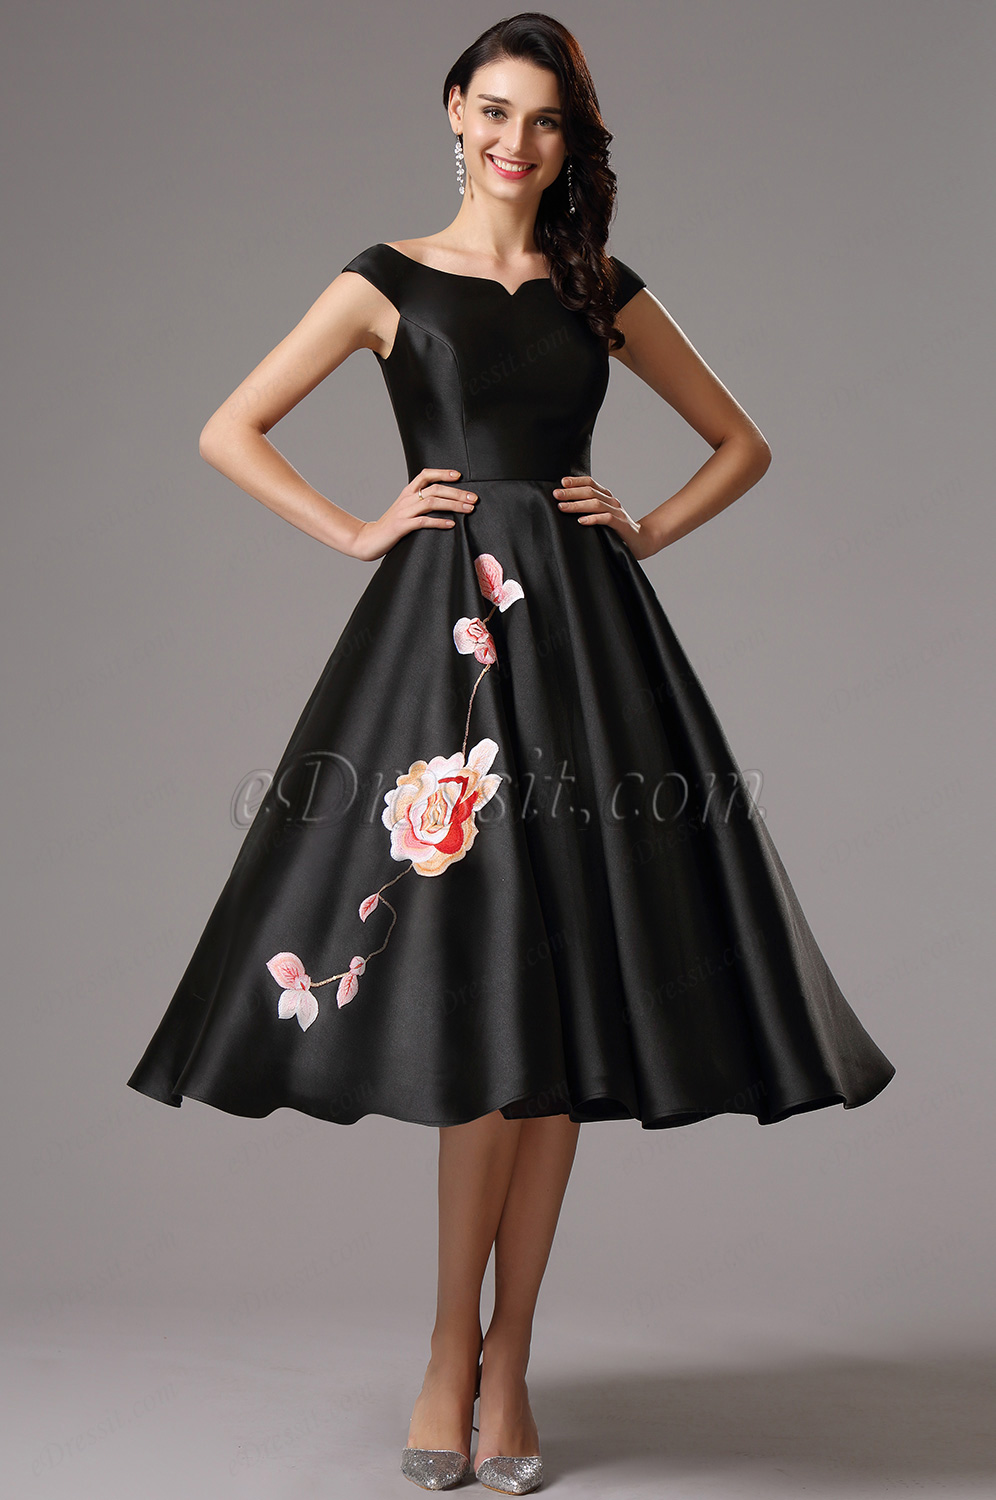 Black Tea Length Evening Gown